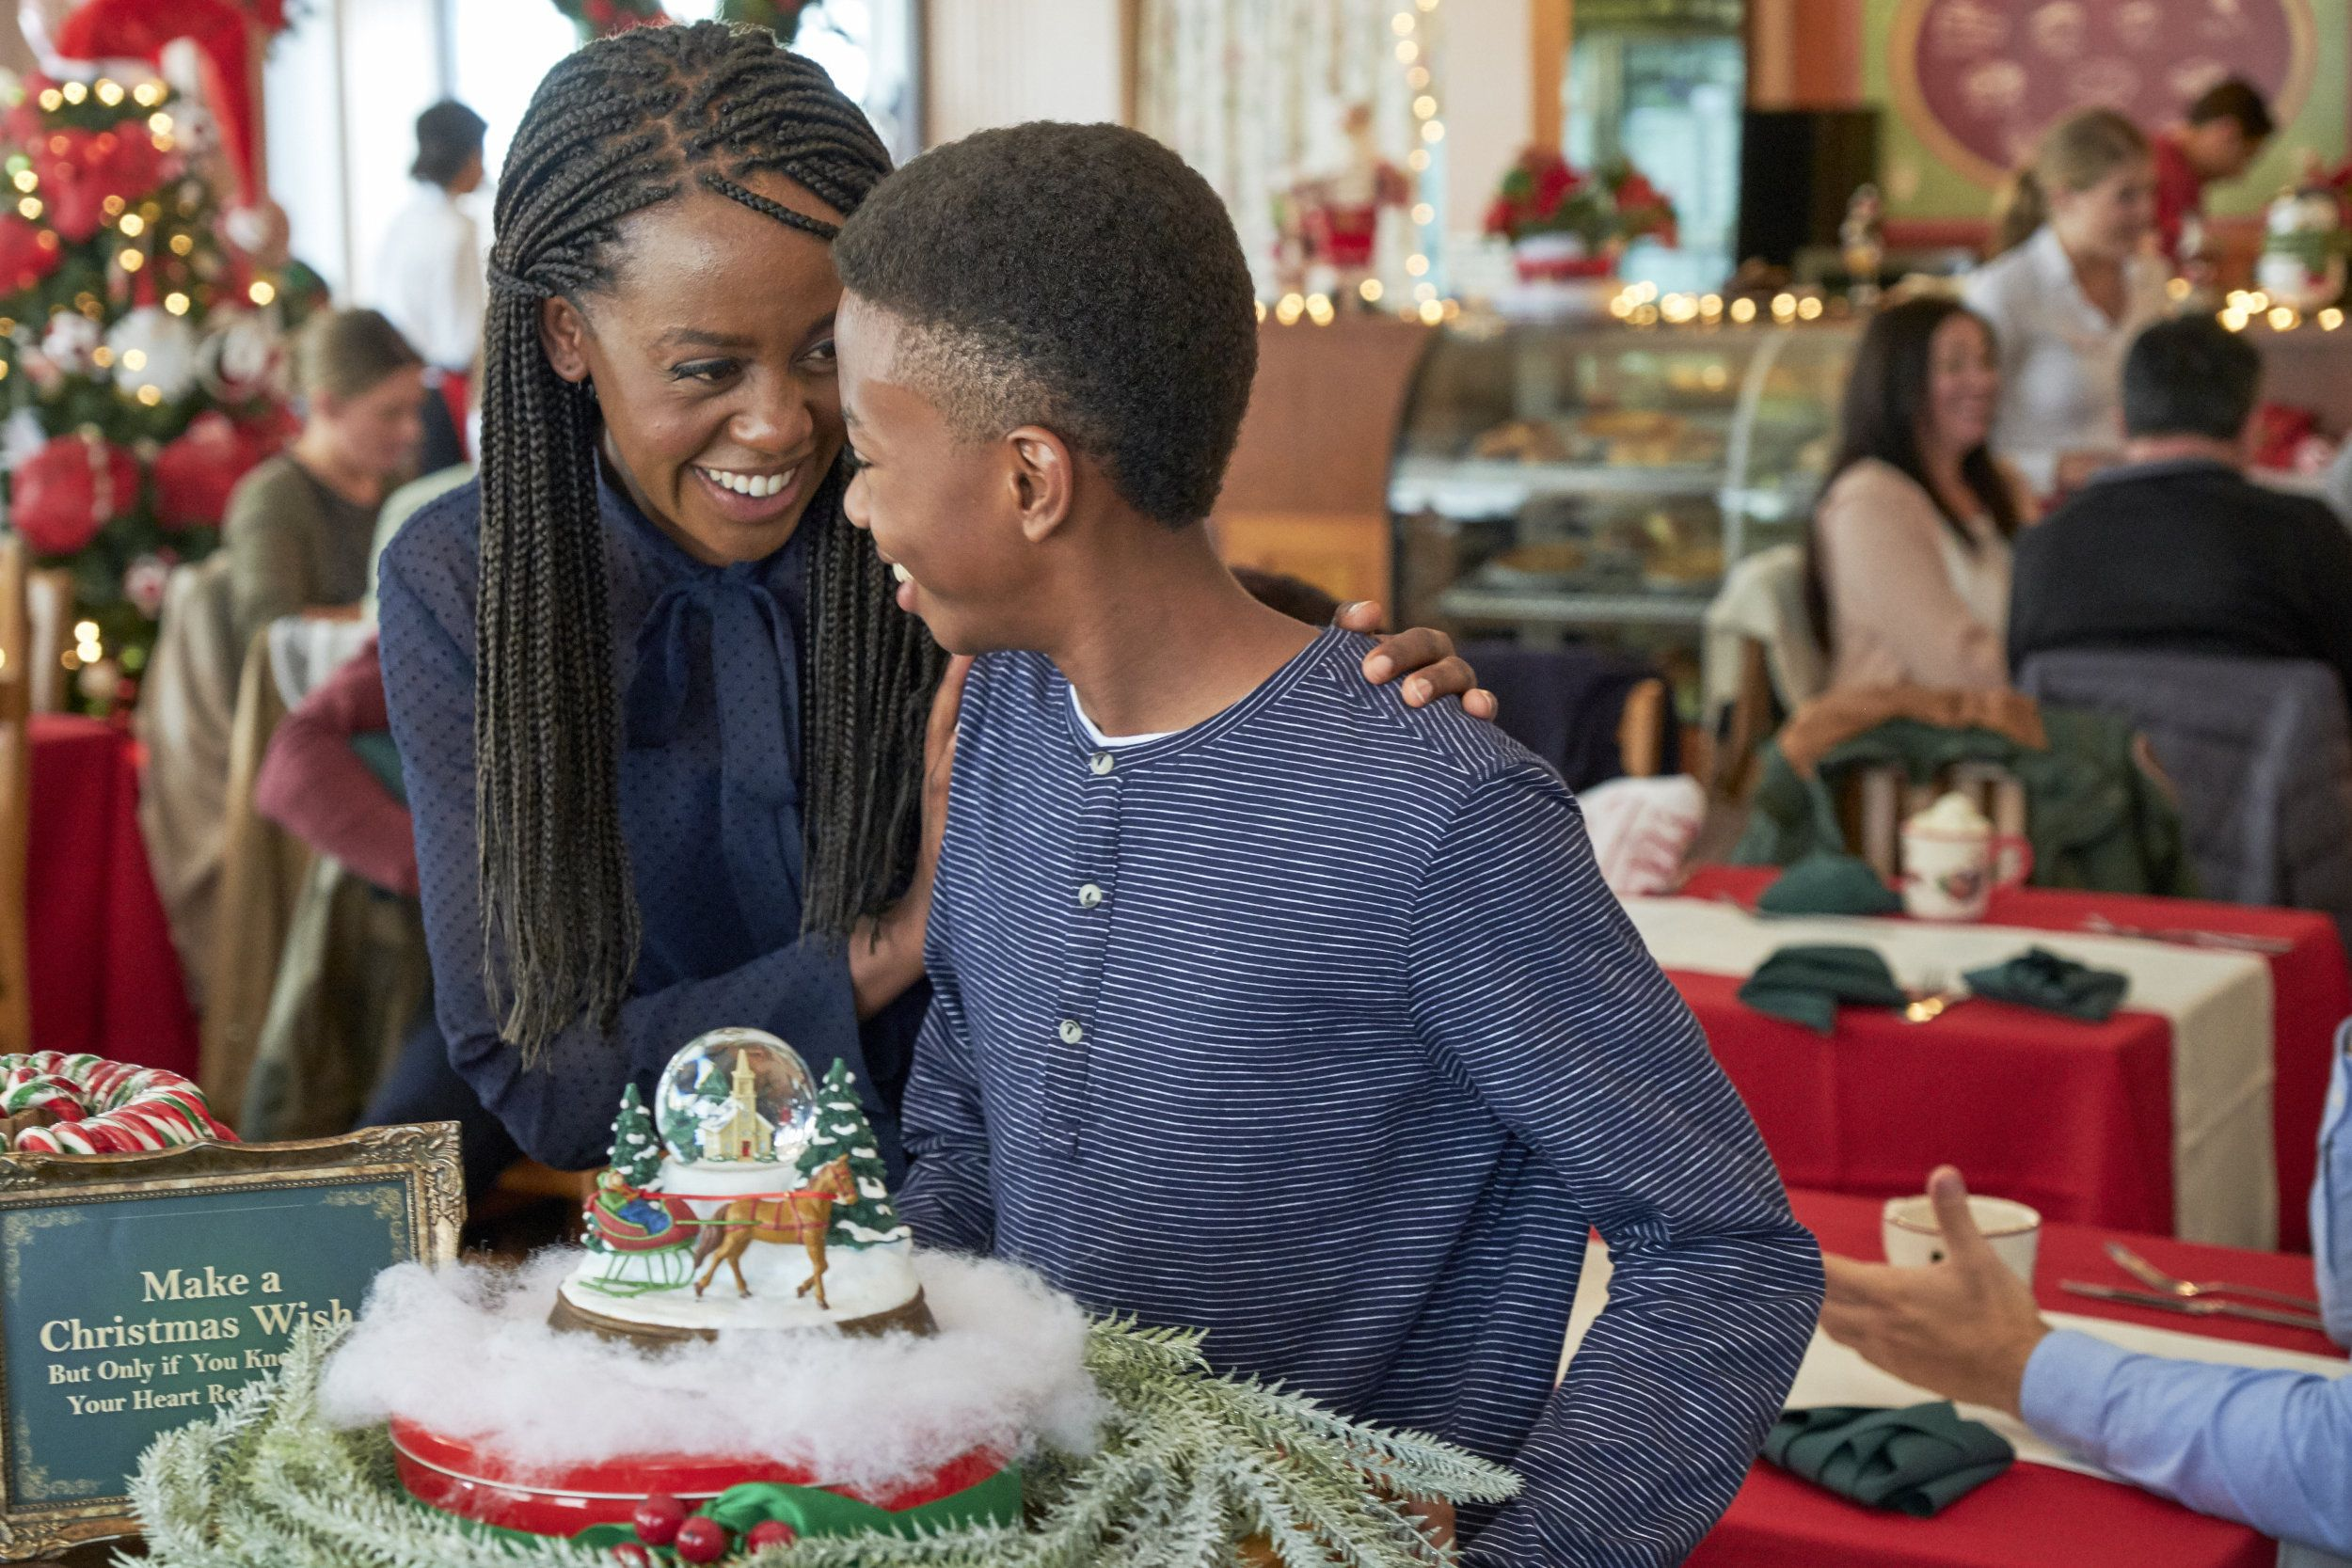 Check out the photo gallery from the Hallmark Channel